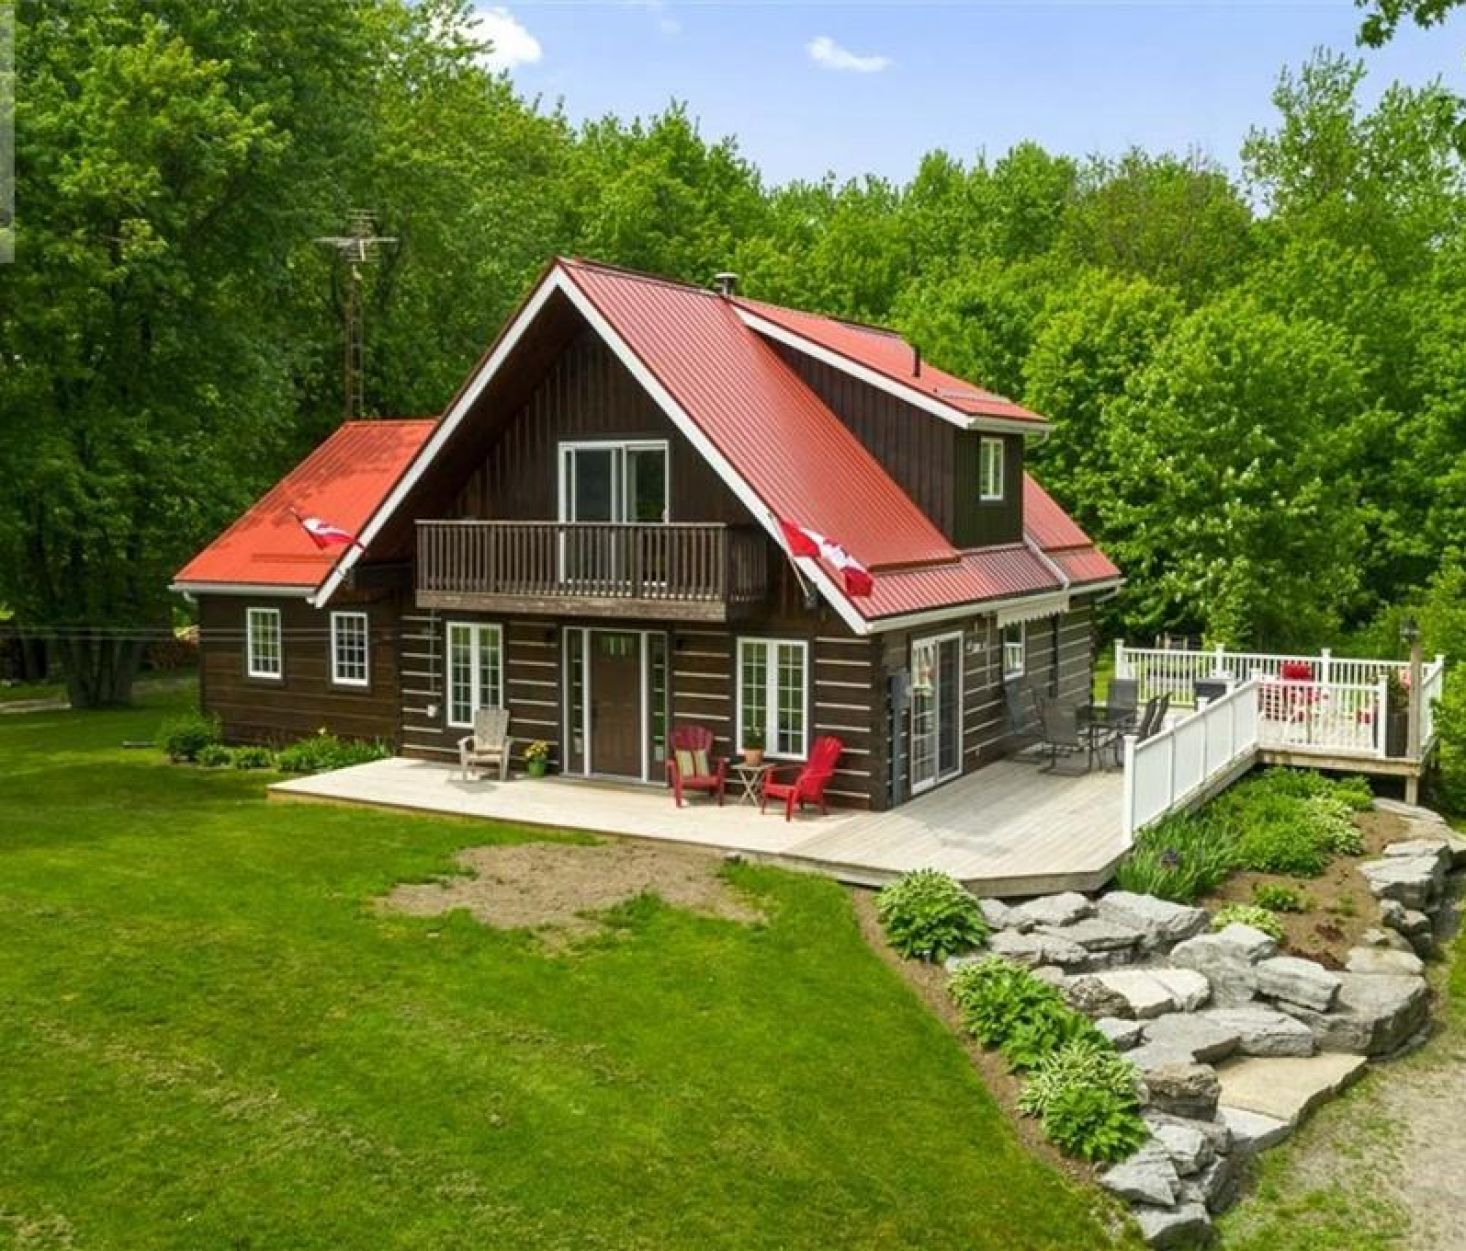 466 SWAMP COLLEGE ROAD, Prince Edward County****SOLD****